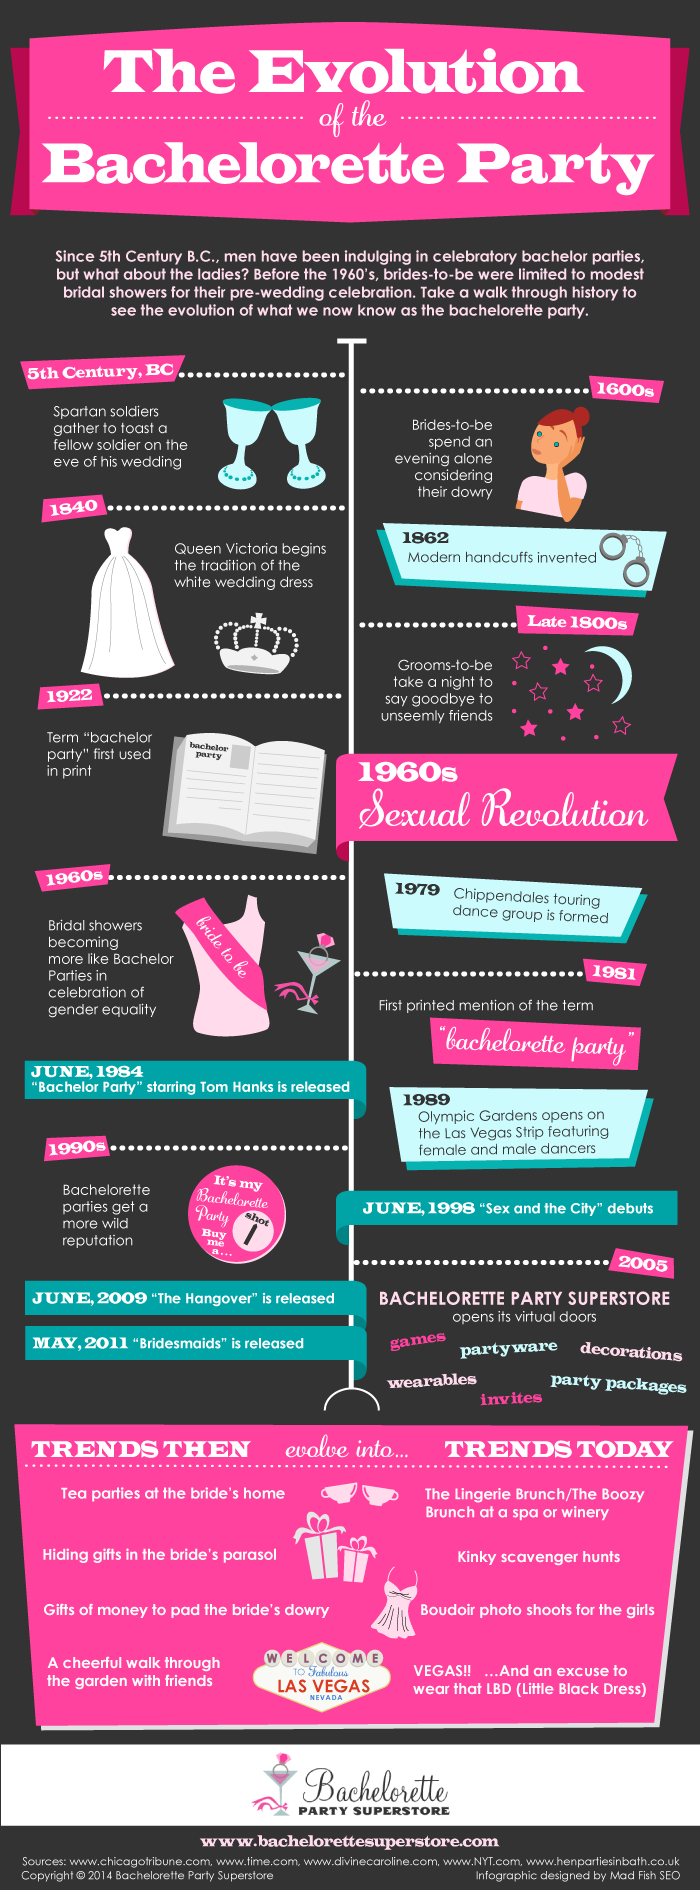 bachelorette party history